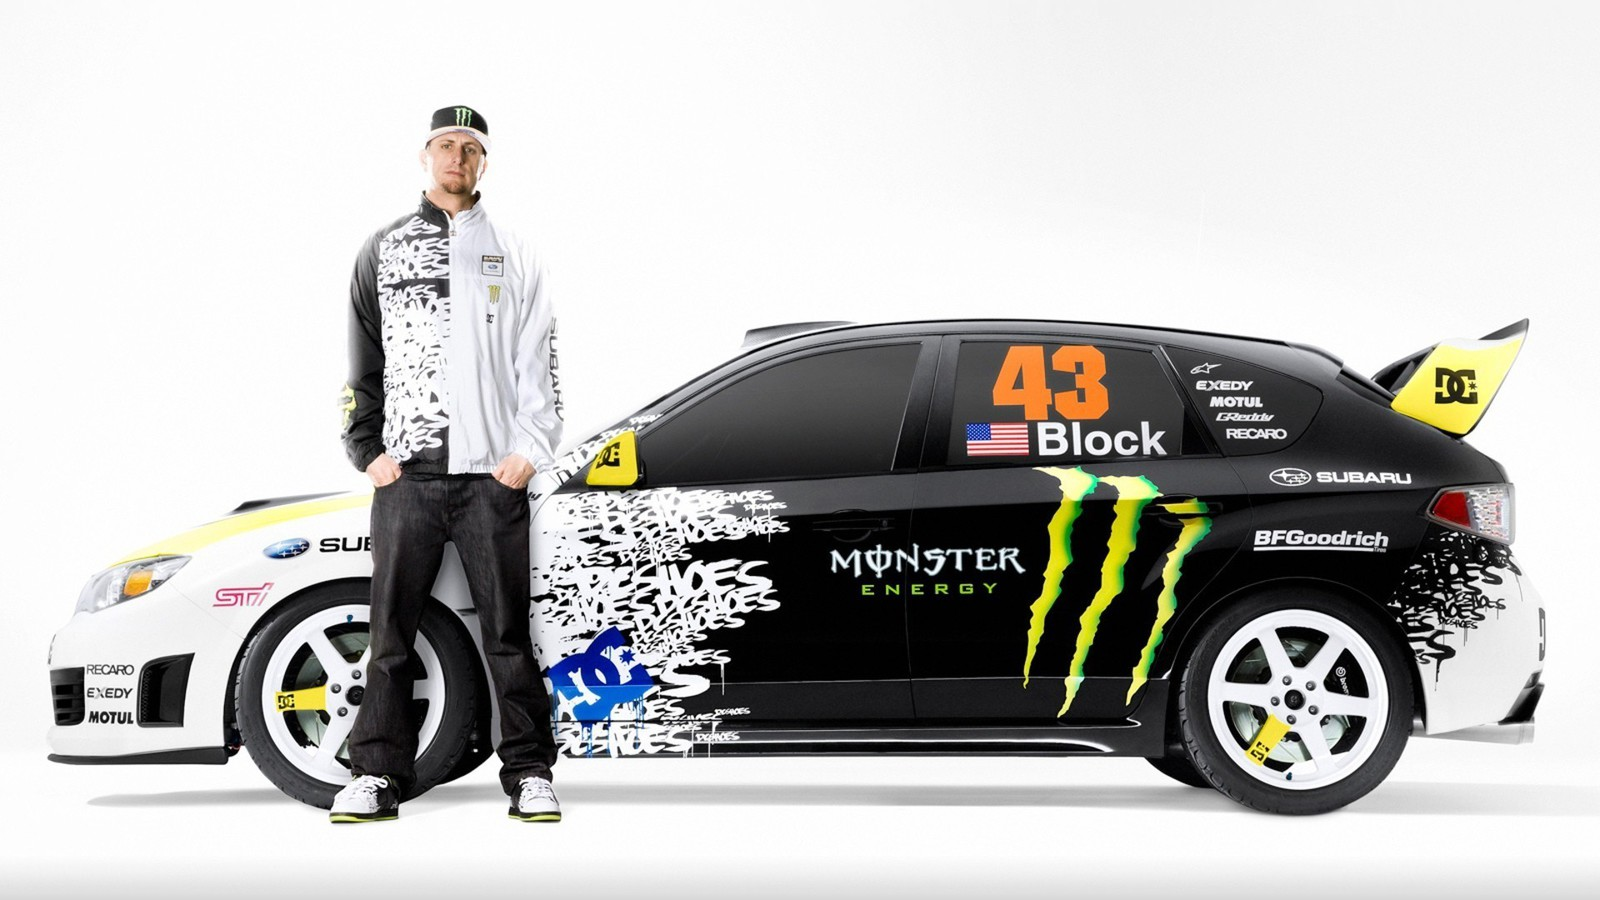 Monster Rally Car Wallpaper Ken Block Subaru Impreza Wrx Sti Cars Wallpaper